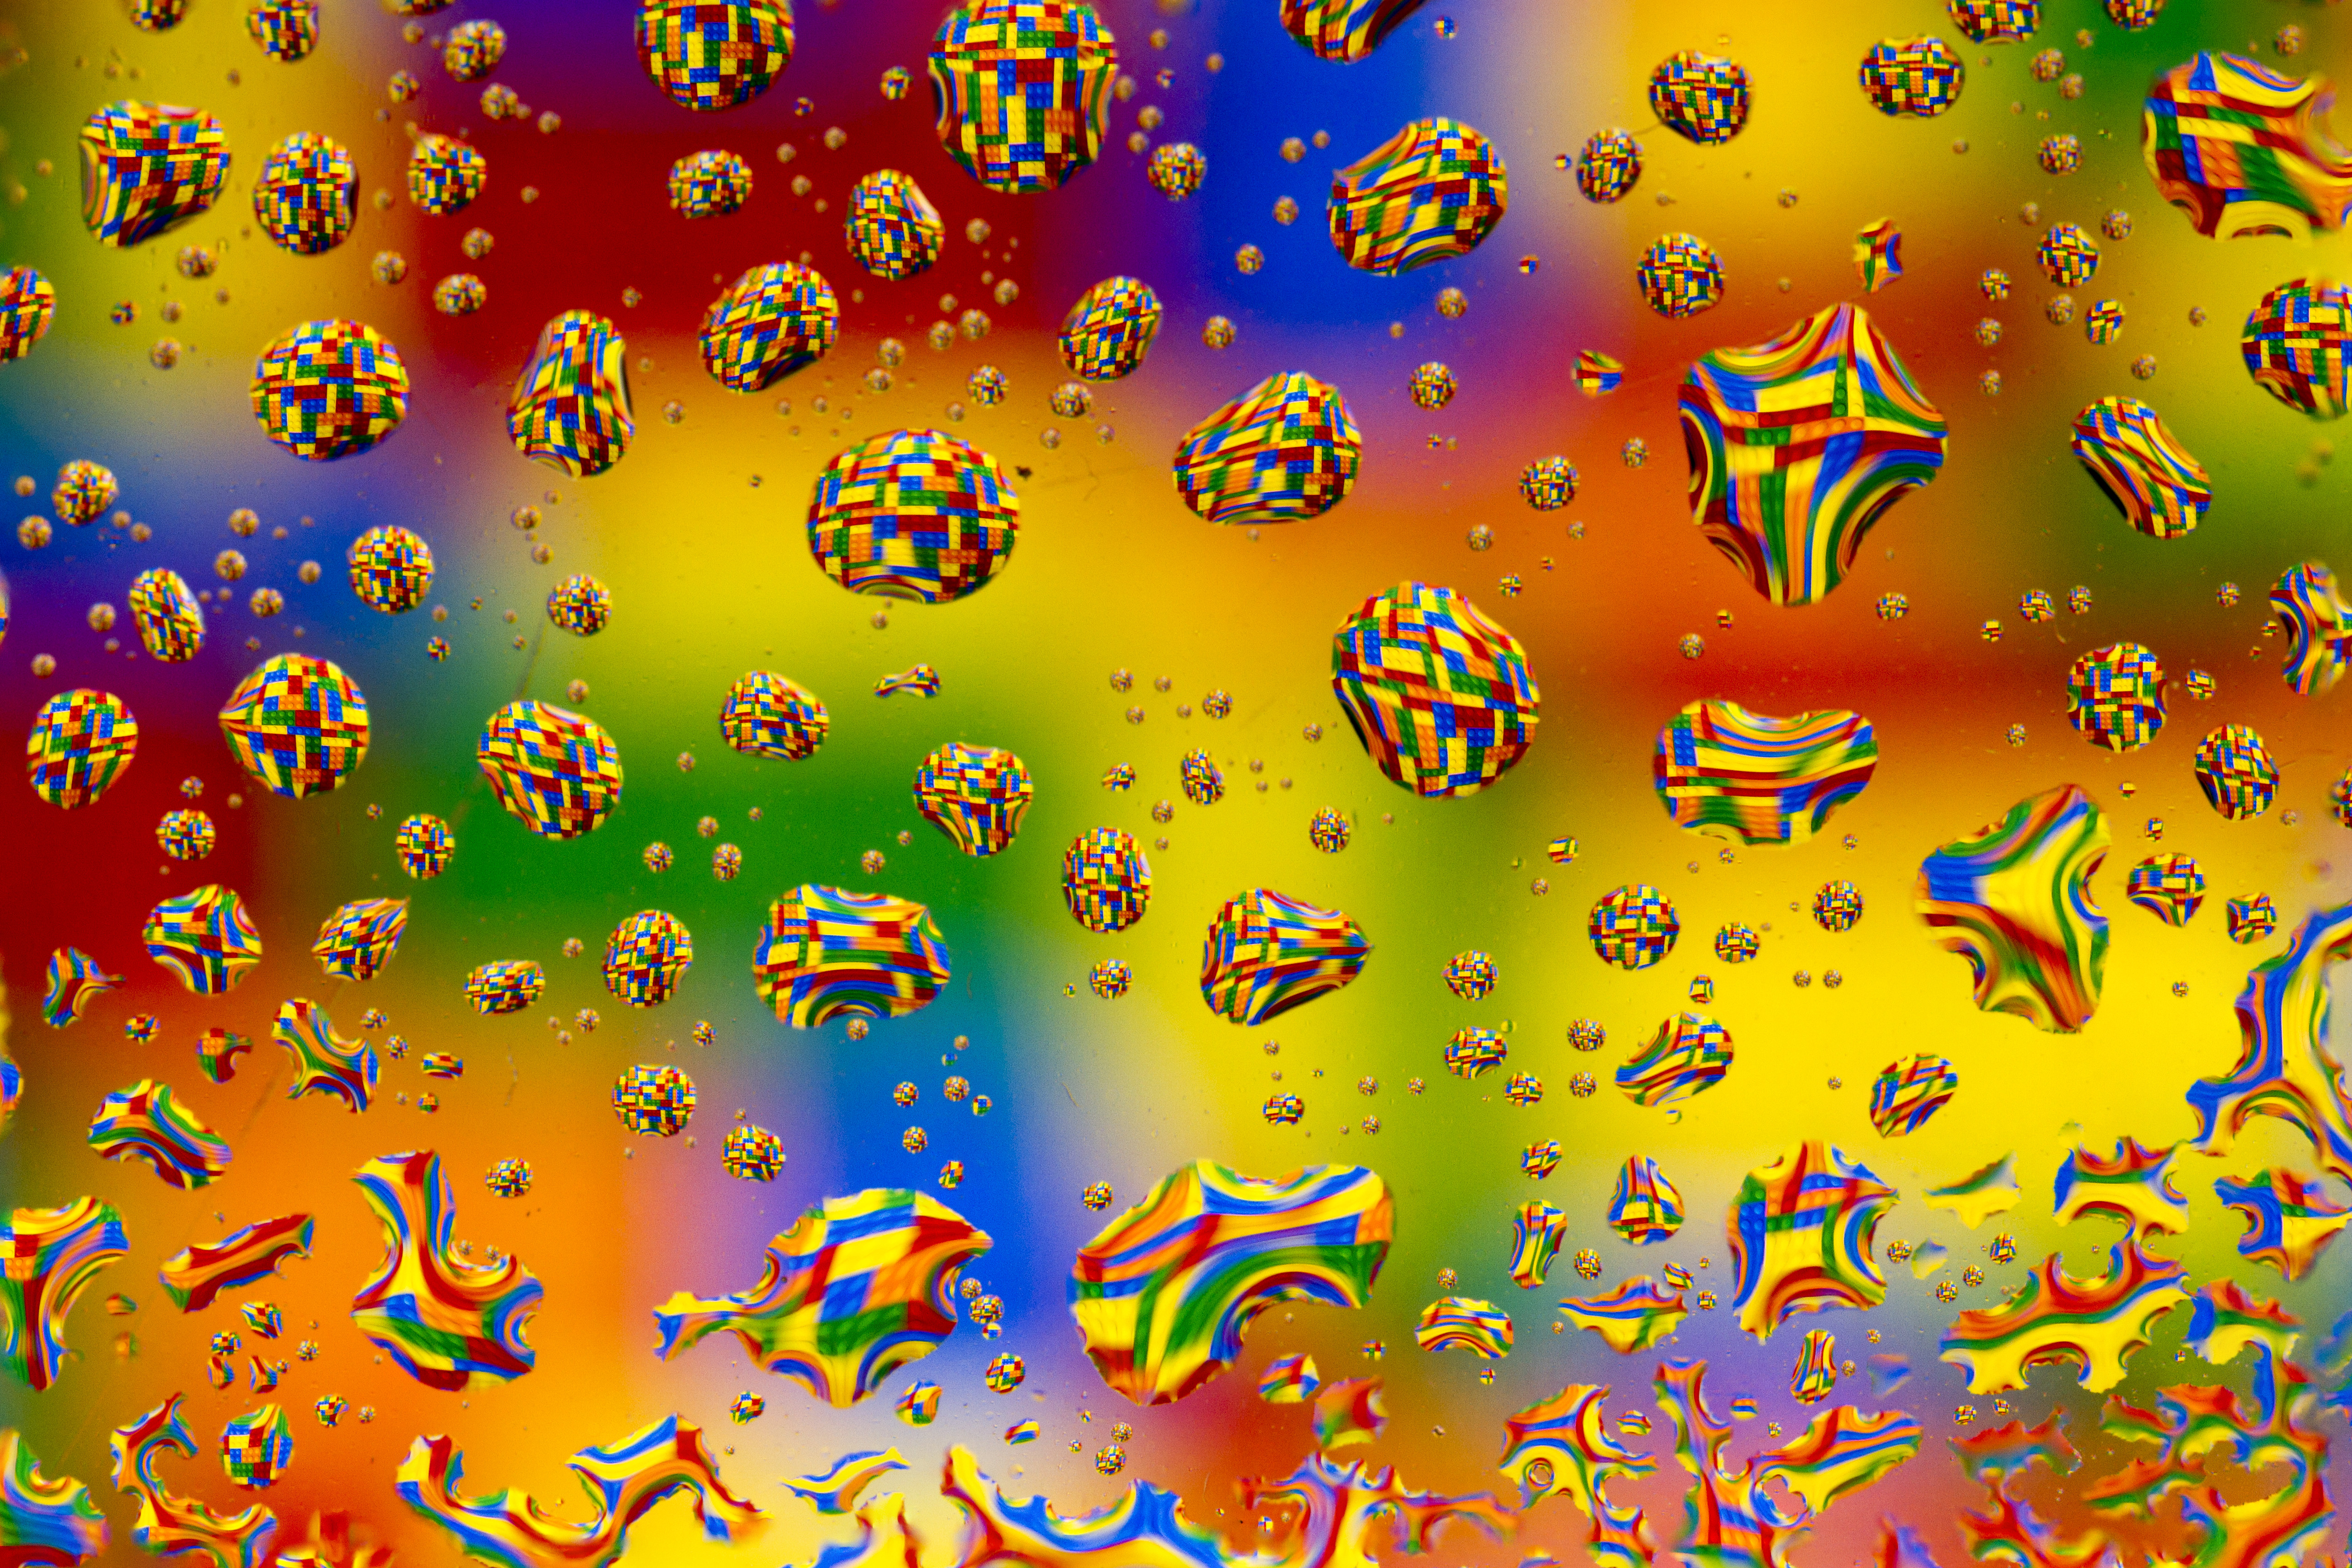 66203 download wallpaper Abstract, Drops, Multicolored, Motley, Distortion, Pixels, Bubbles screensavers and pictures for free